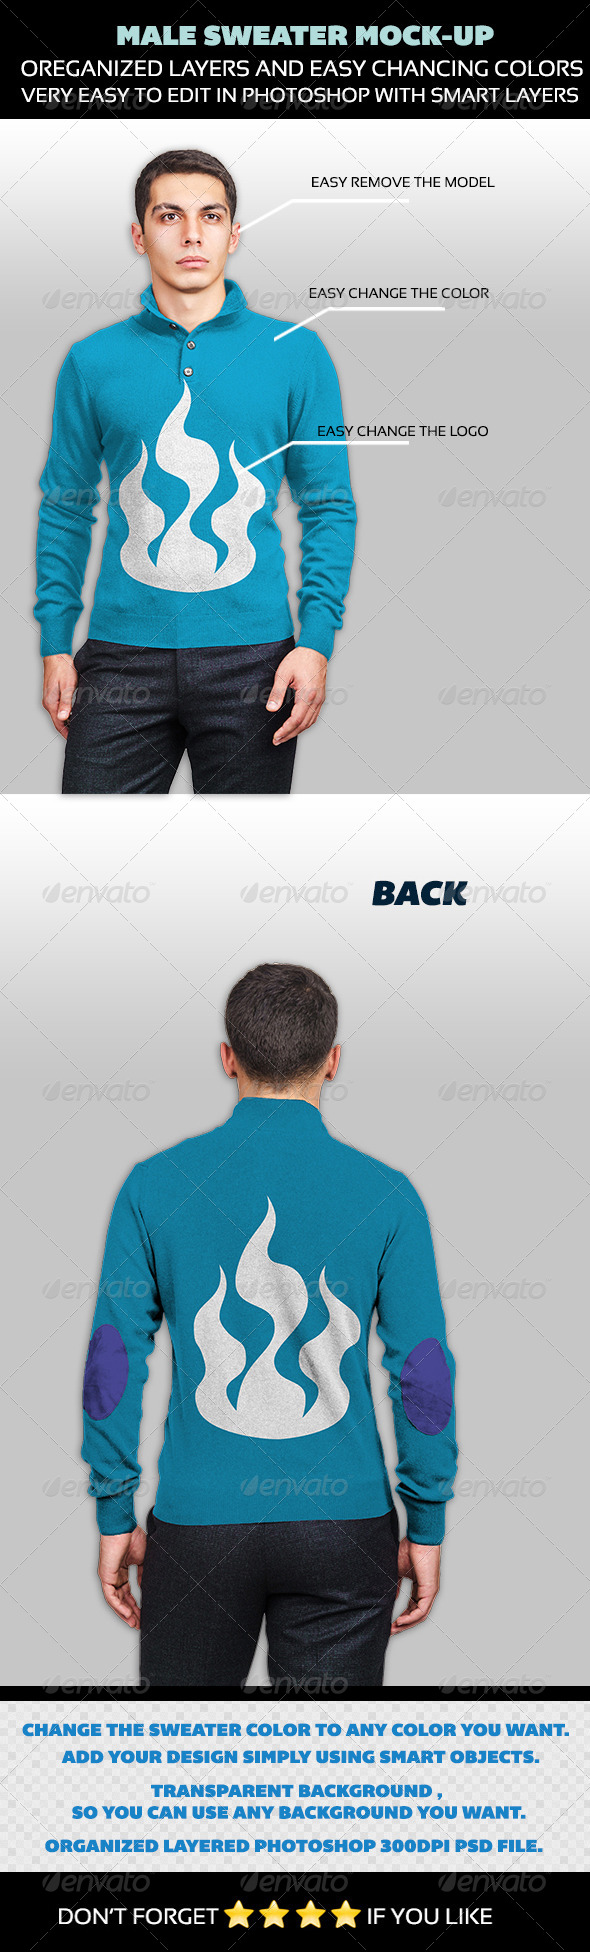 GraphicRiver Male Sweater Mock-up 4530652